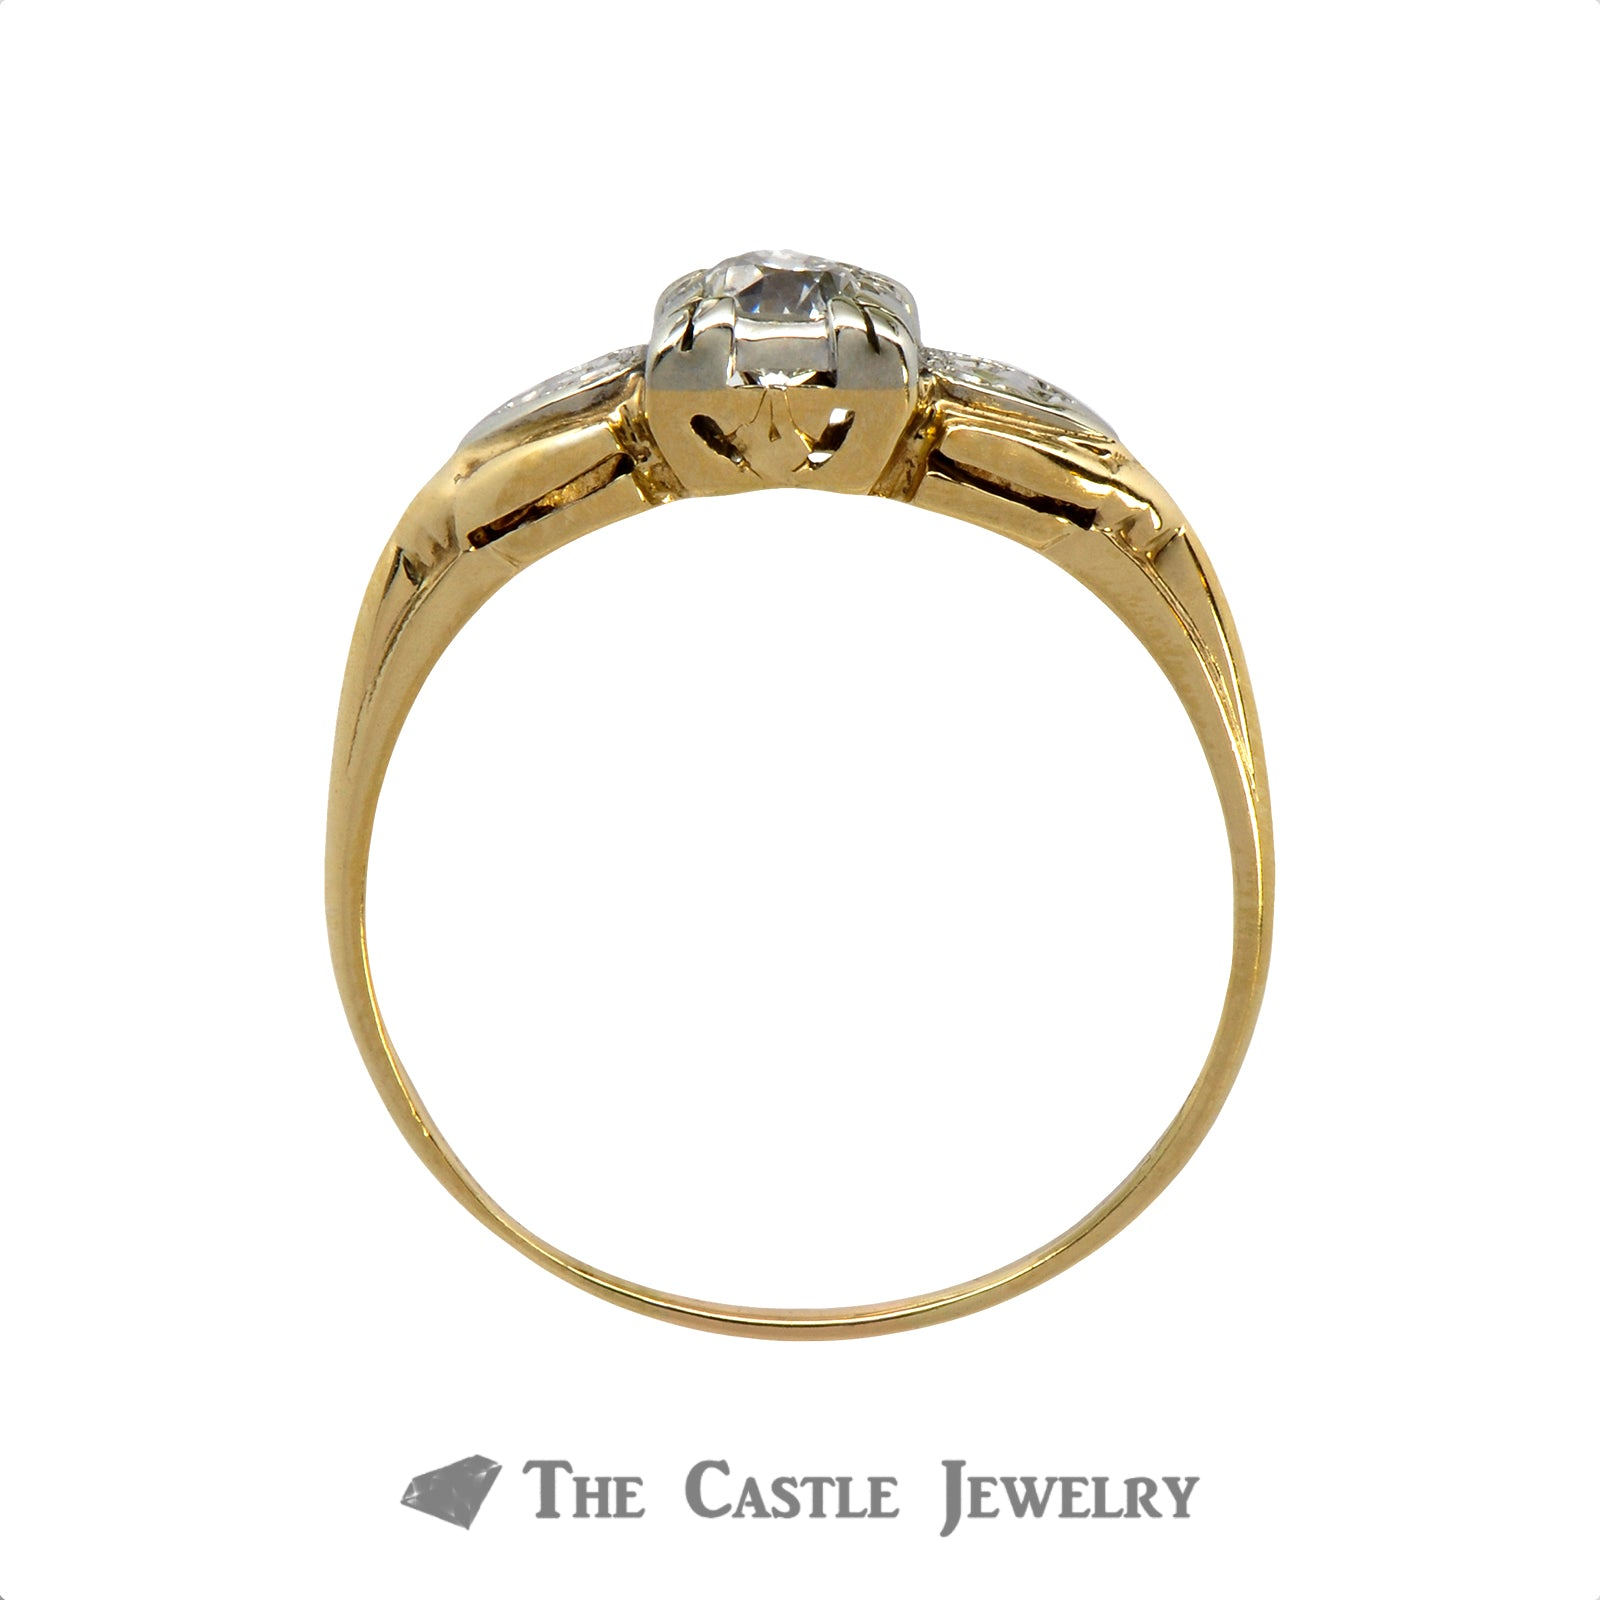 .30ct Old European Cut Diamond Solitaire Engagement Ring in 14k Two-Tone Gold-1